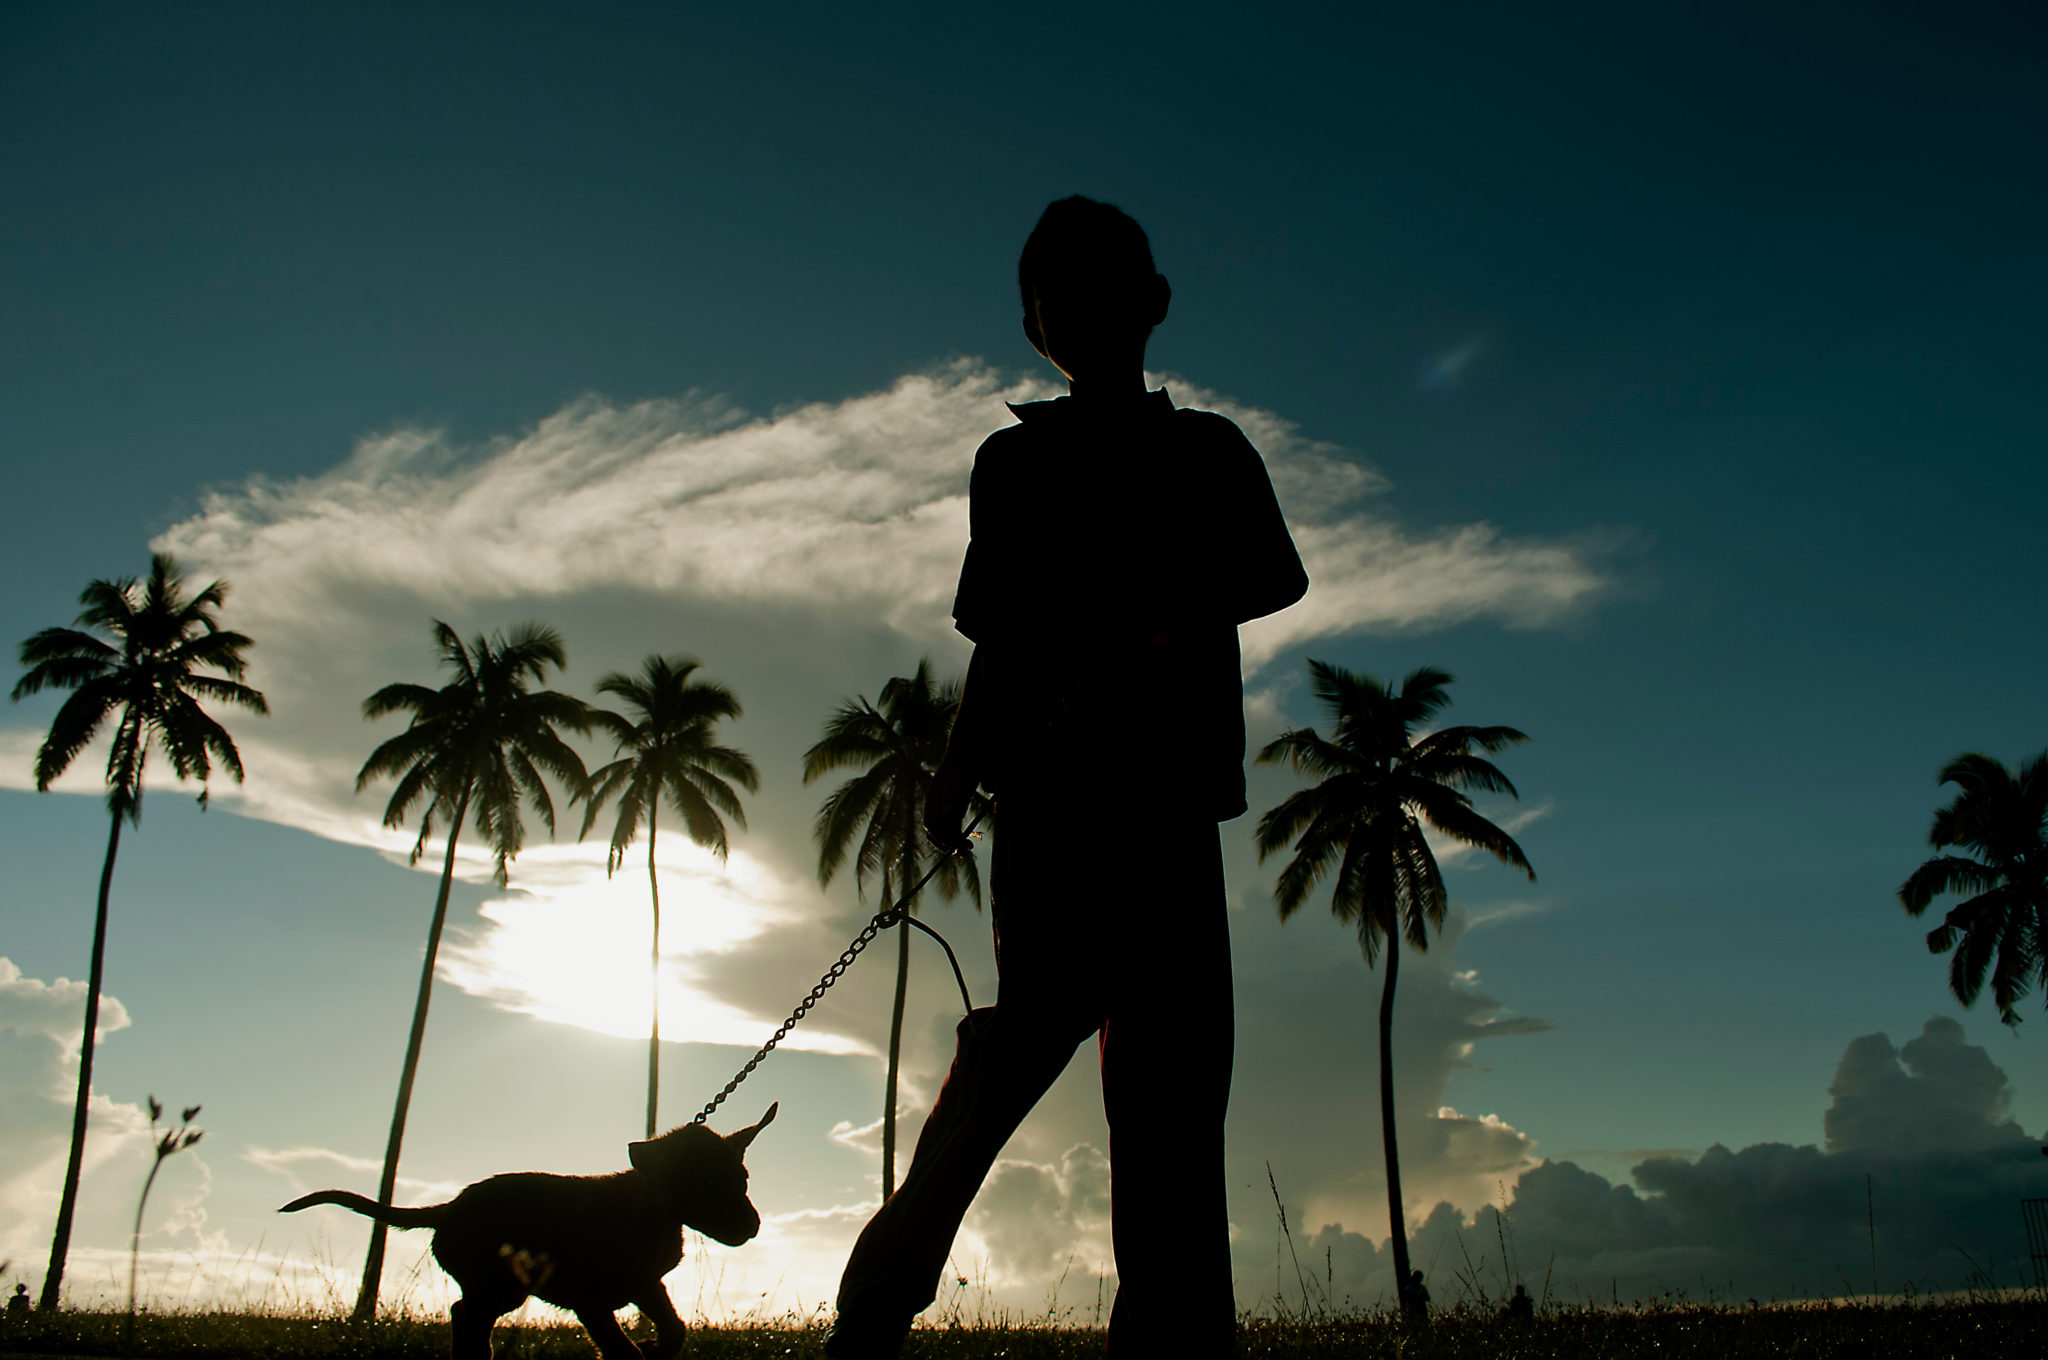 Fiji-travel-boy-dog